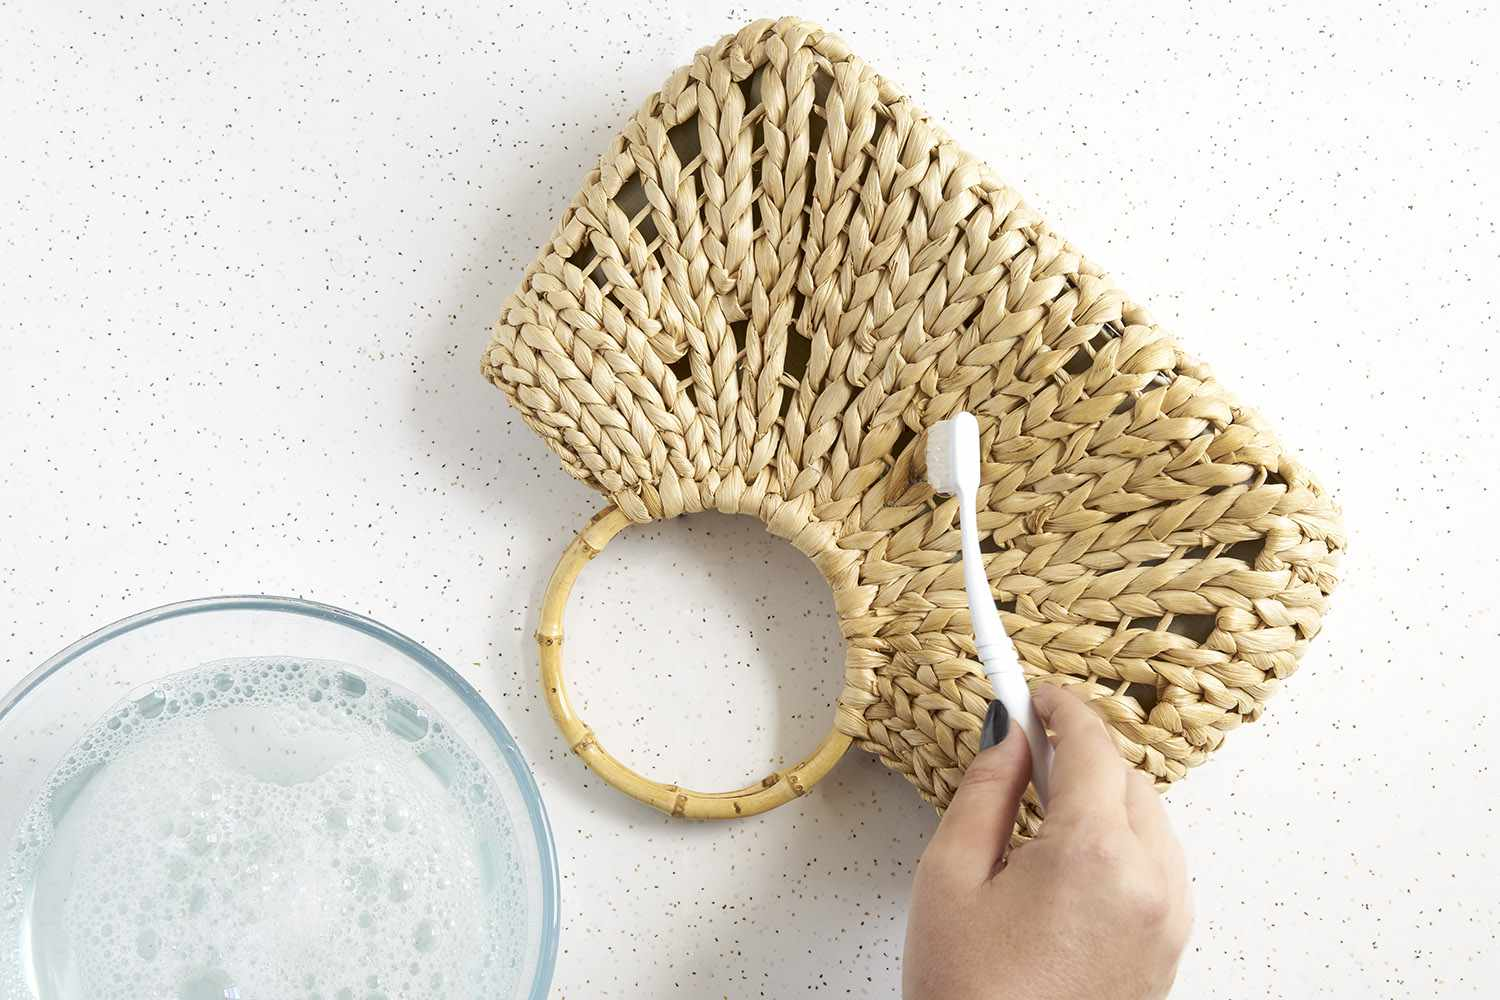 Someone using a toothbrush to spot clean a straw bag